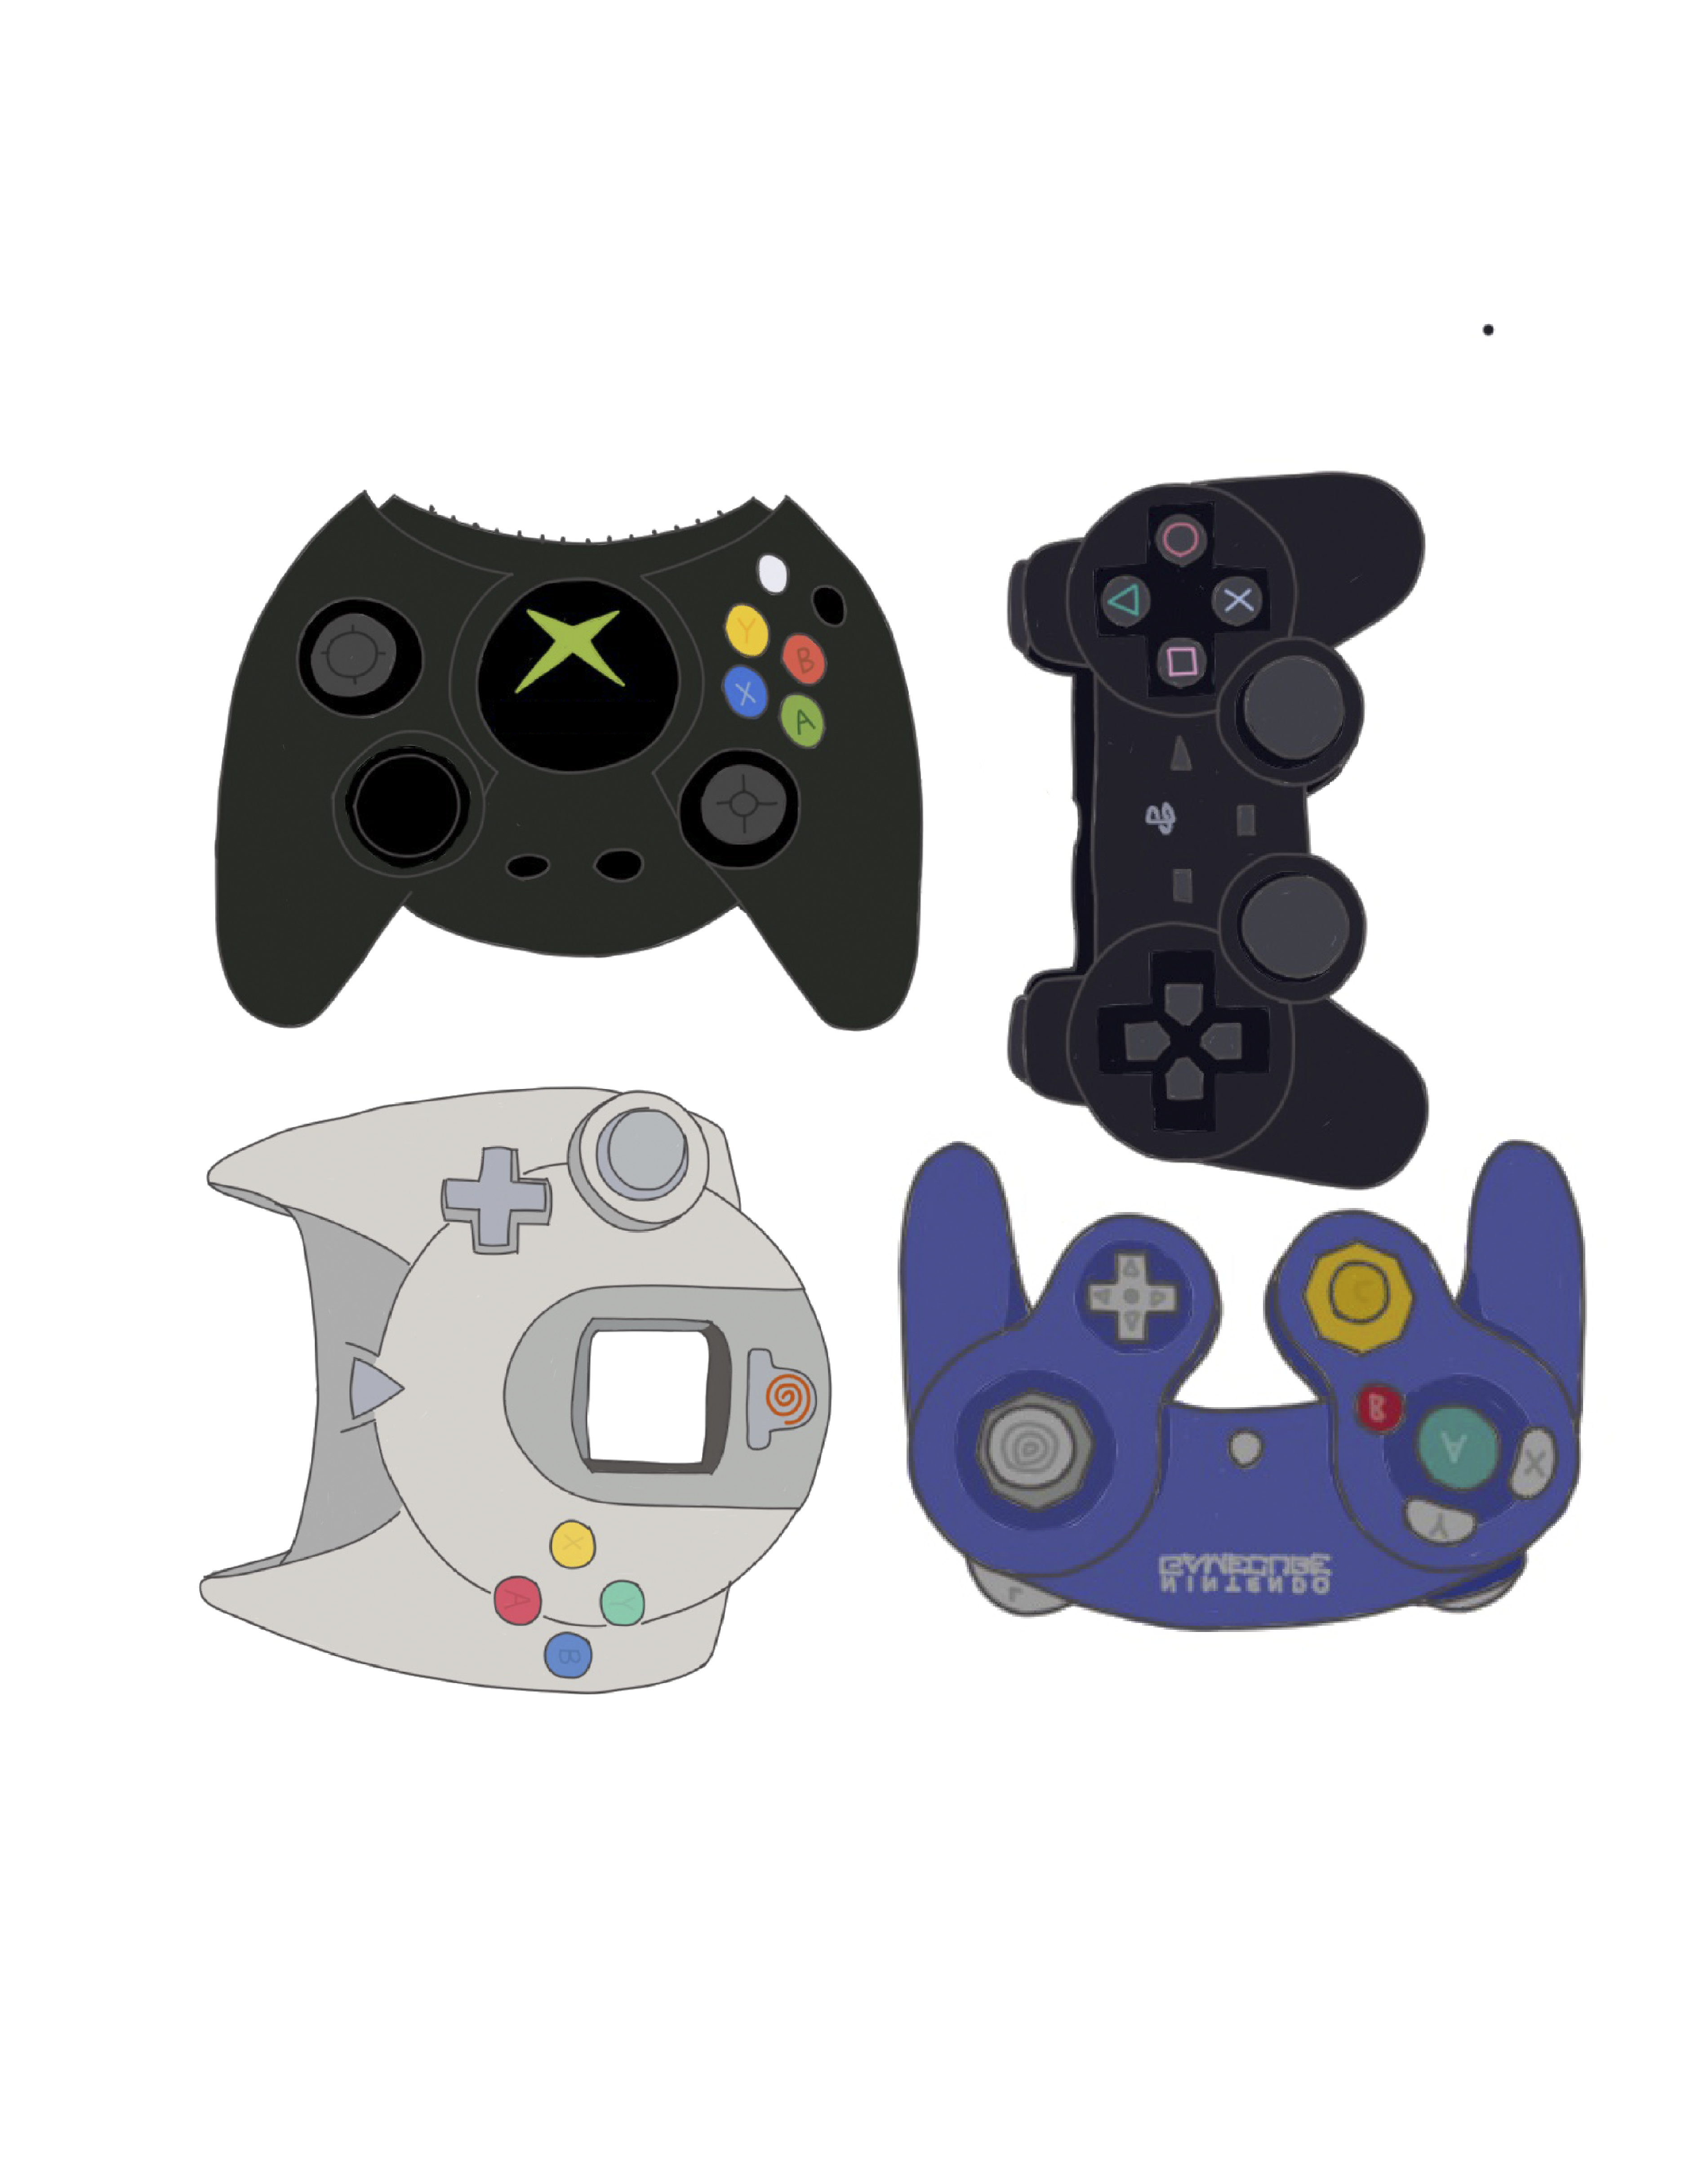 Generation 6 Xbox Playstation 2 Sega Dreamcast Nintendo Gamecube Video Game Controllers Iphone Mobile Wallpaper Video Game Controller Playstation Games